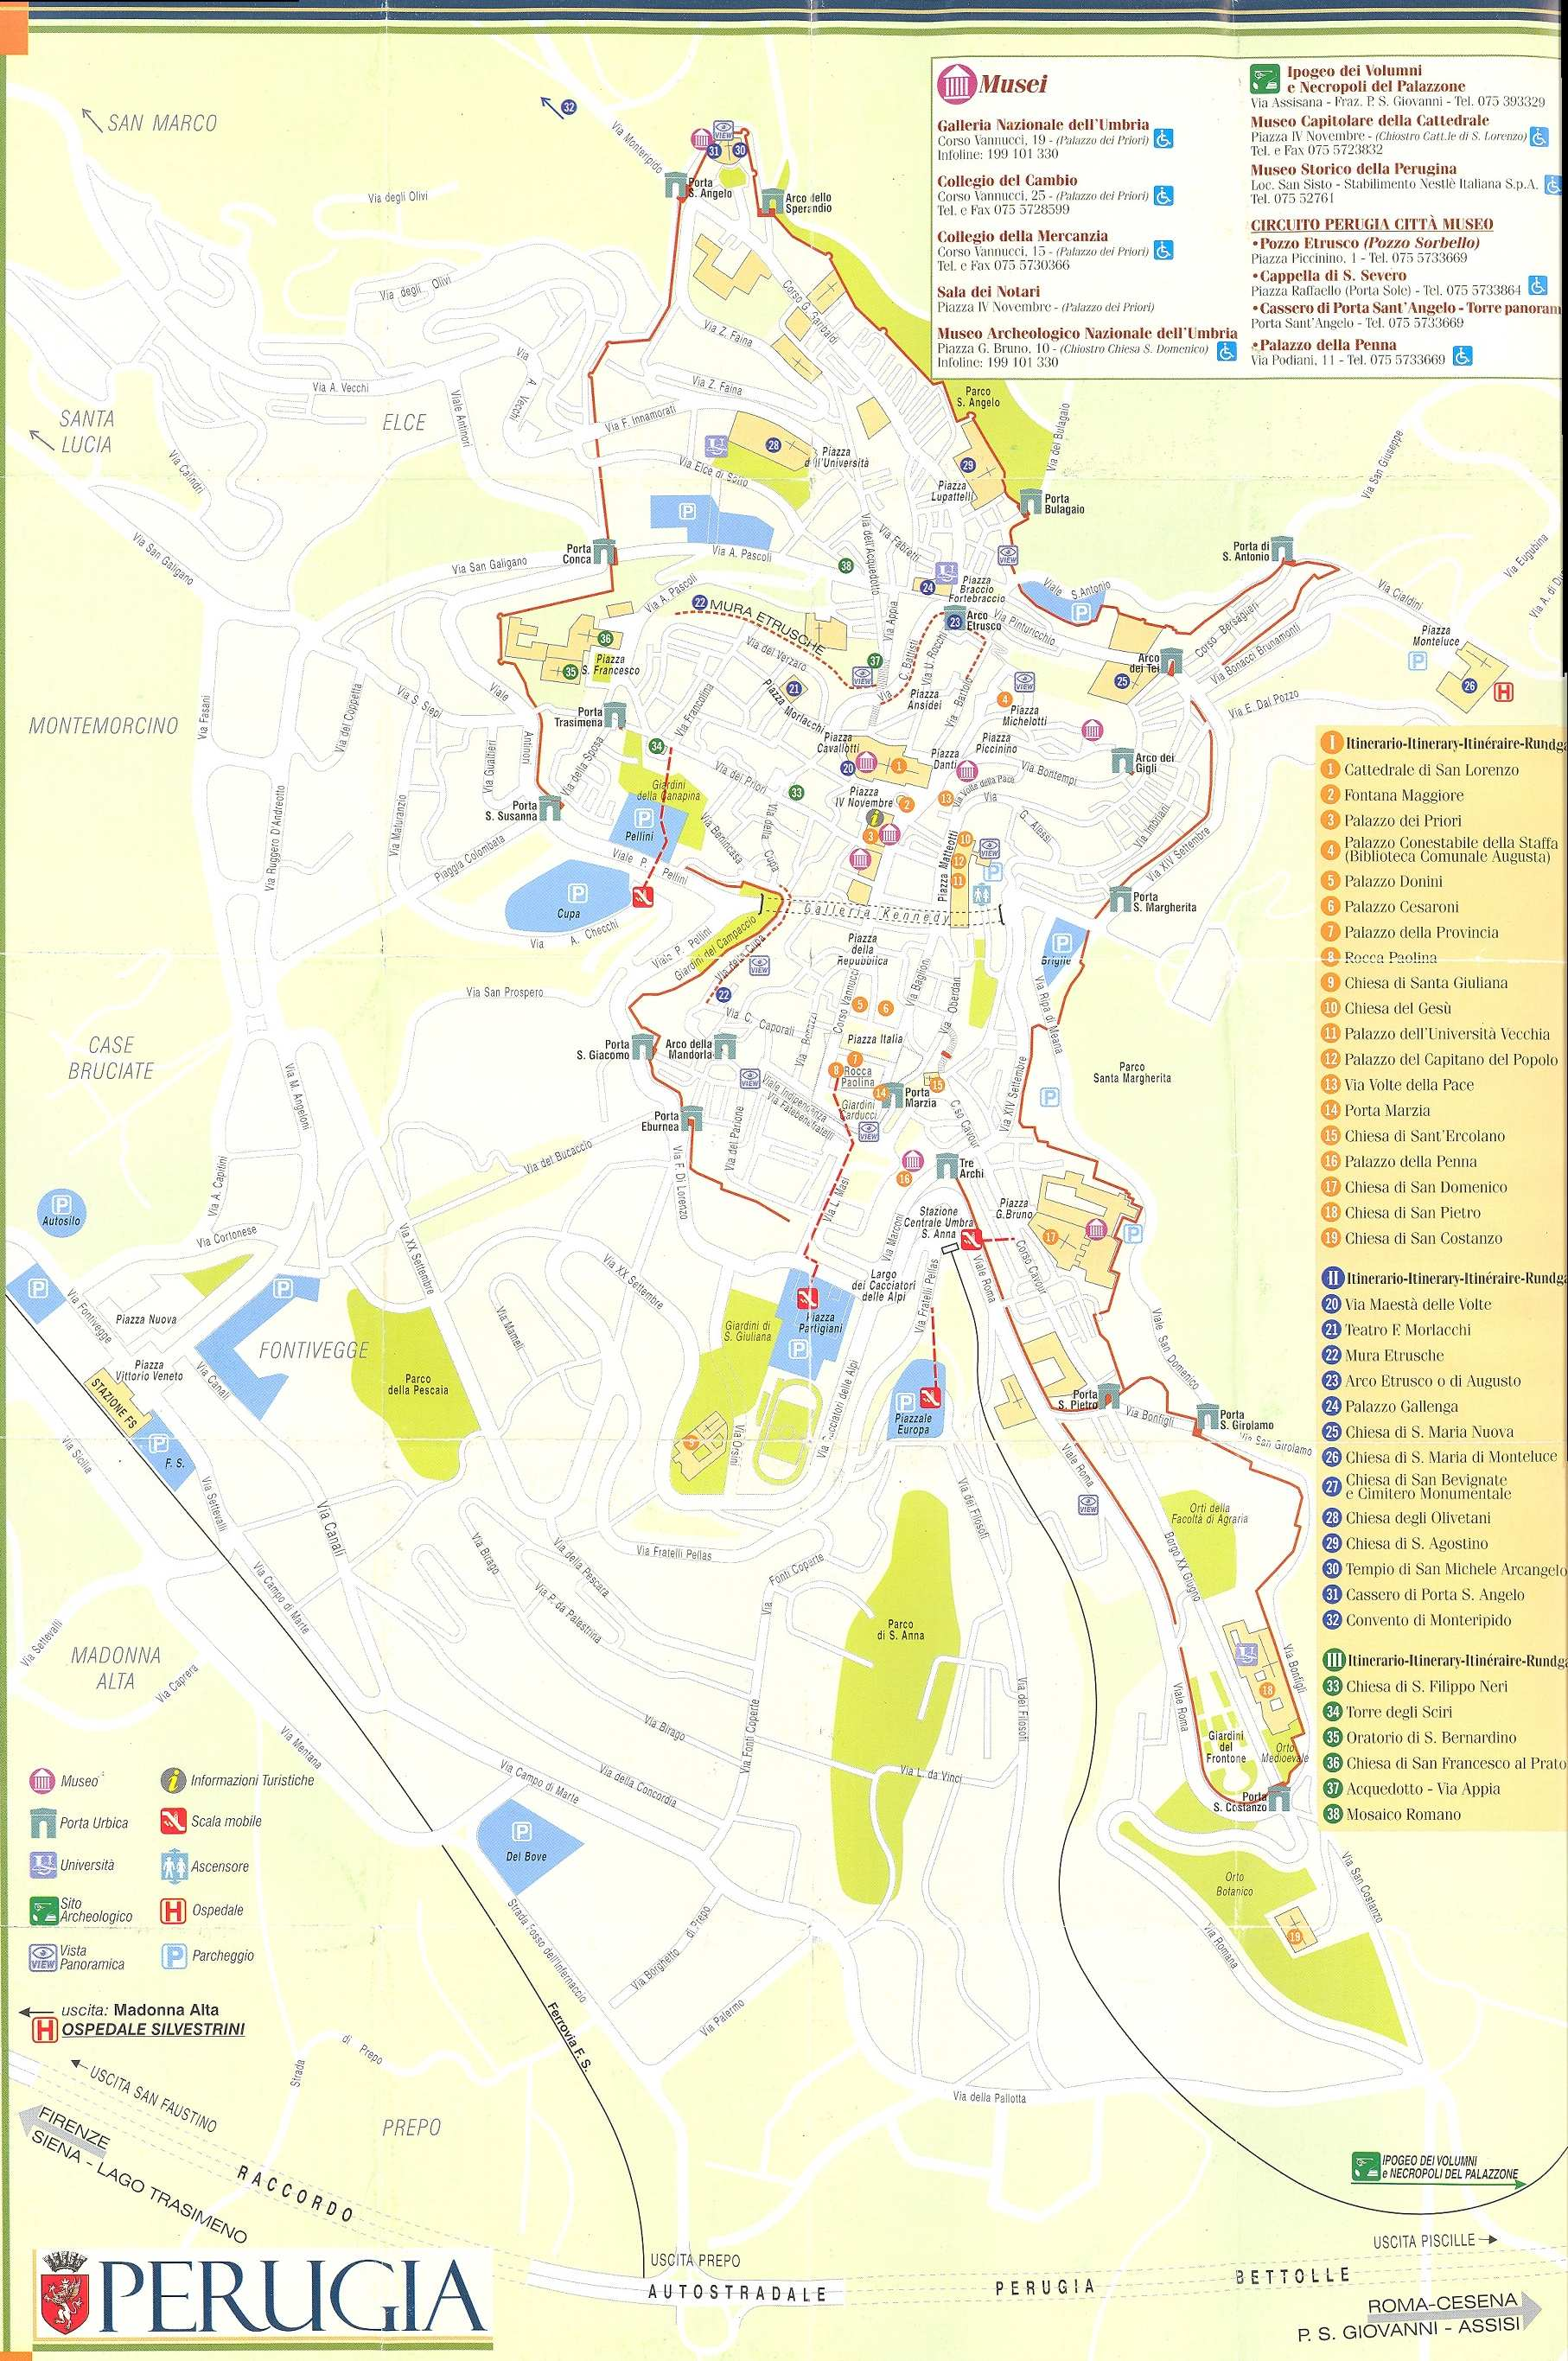 Perugia Italy Map Large Perugia Maps for Free Download and Print | High Resolution